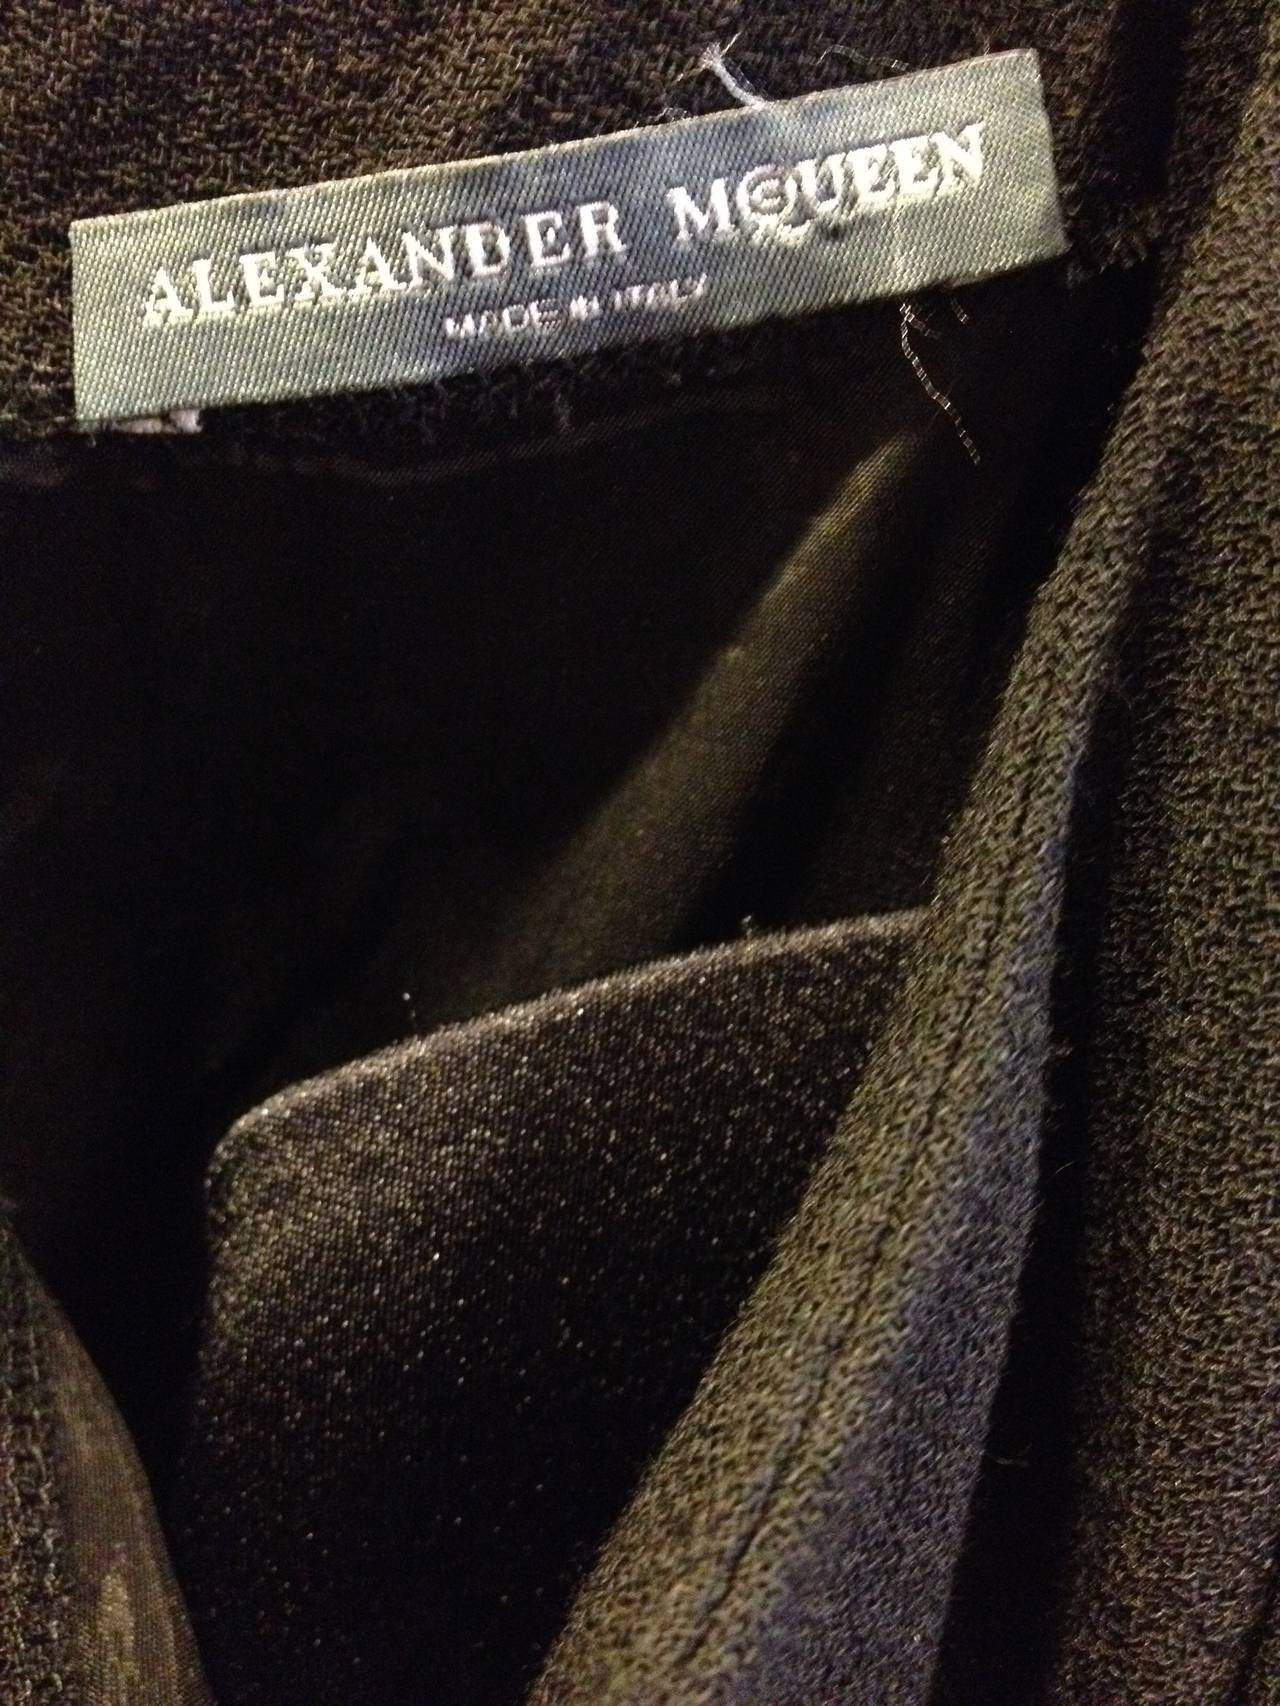 Alexander McQueen Black Dress with White Stitches For Sale 3